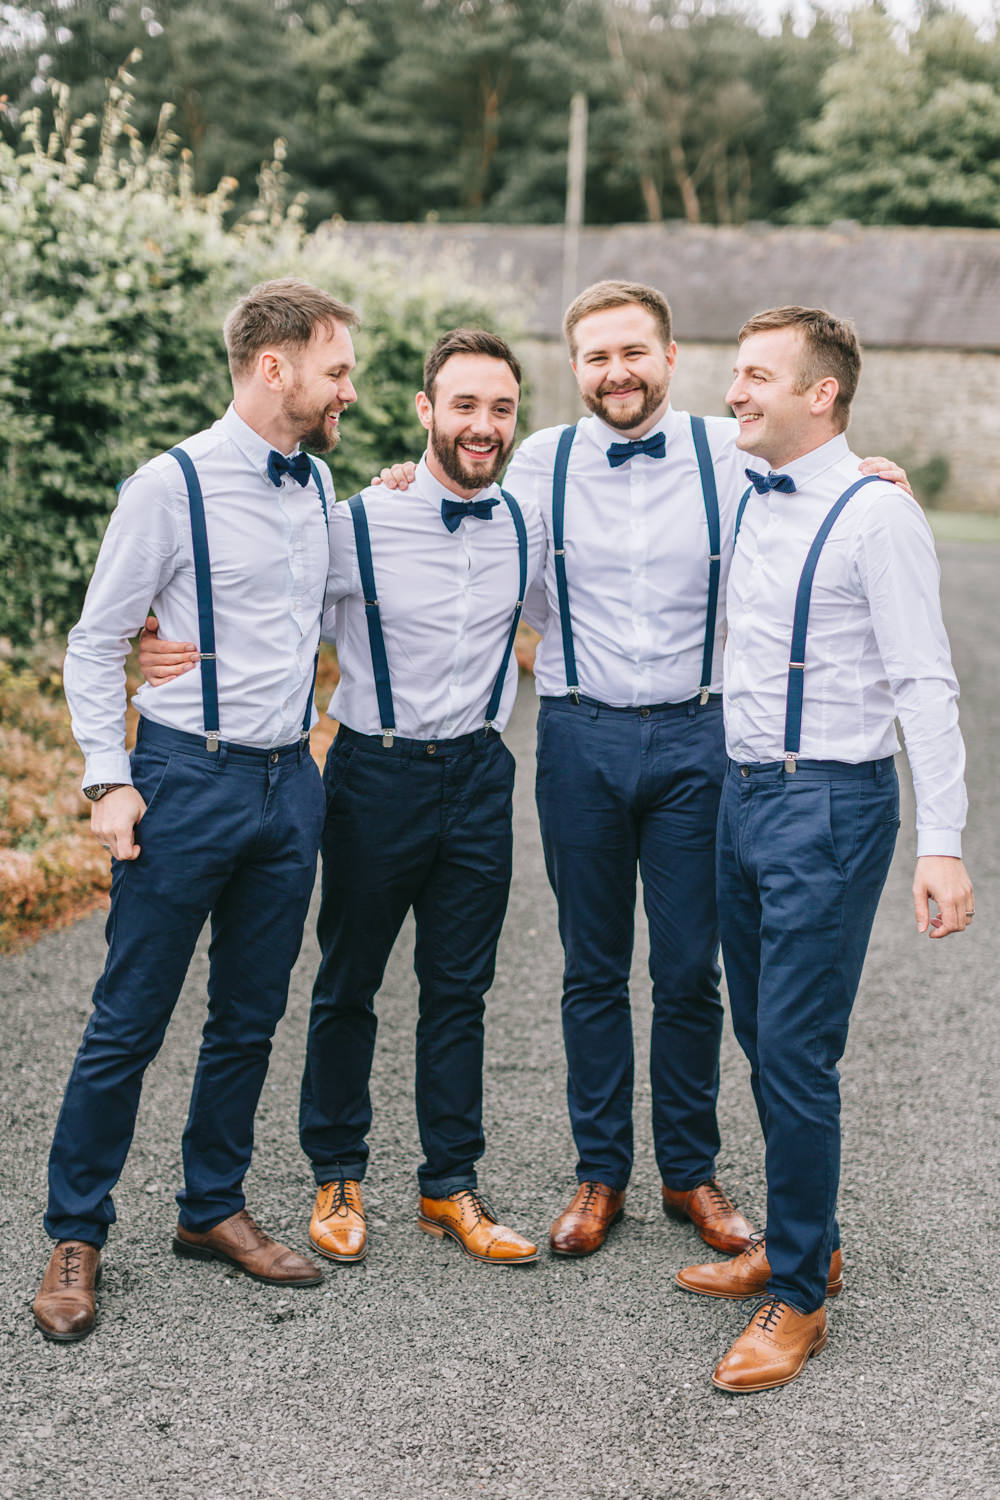 Groom Navy Blue Blazer Chinos Bow Tie Groomsmen Braces Healey Barn Wedding Amy Lou Photography